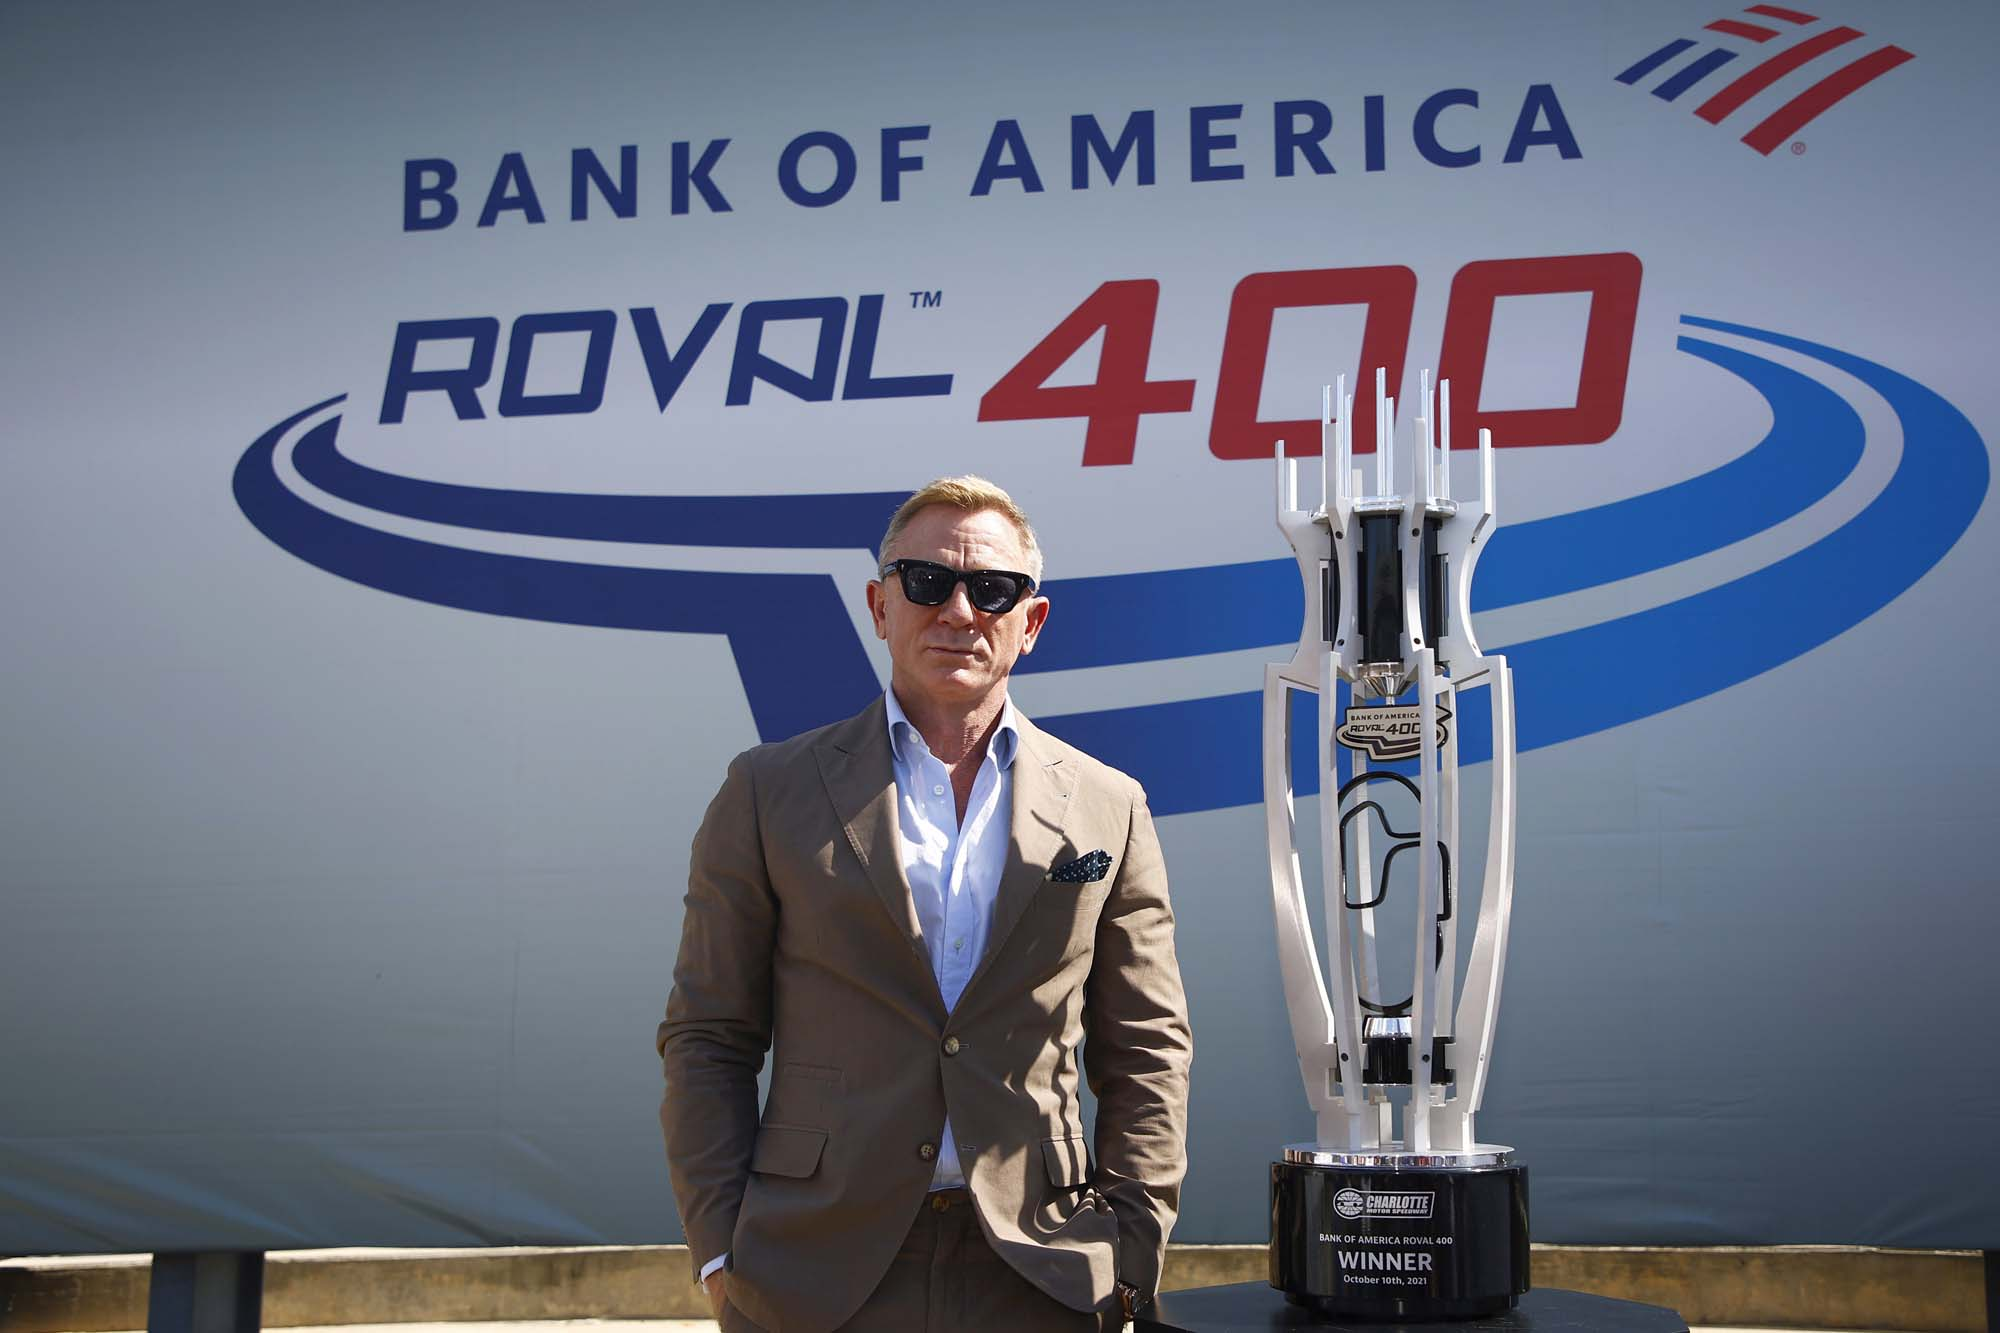 NASCAR Cup Series Bank of America ROVAL 400